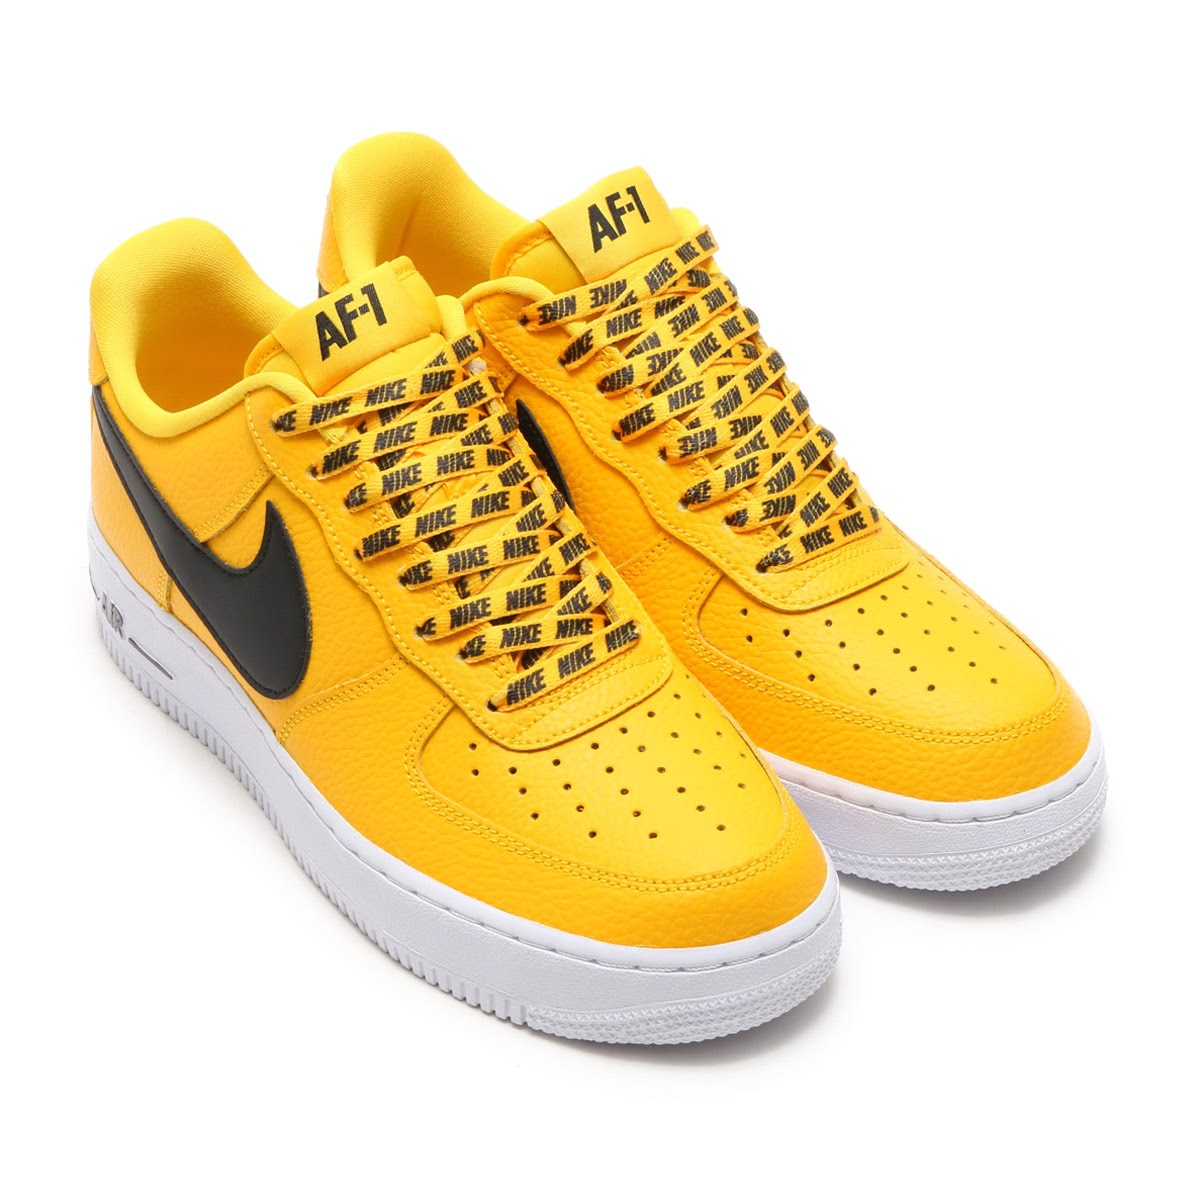 huge discount 2a993 93529 The activity with the coat gives stimulation to basketball fans making an  effort towards the realization of the dream of the world. The new air force  1 LOW ...